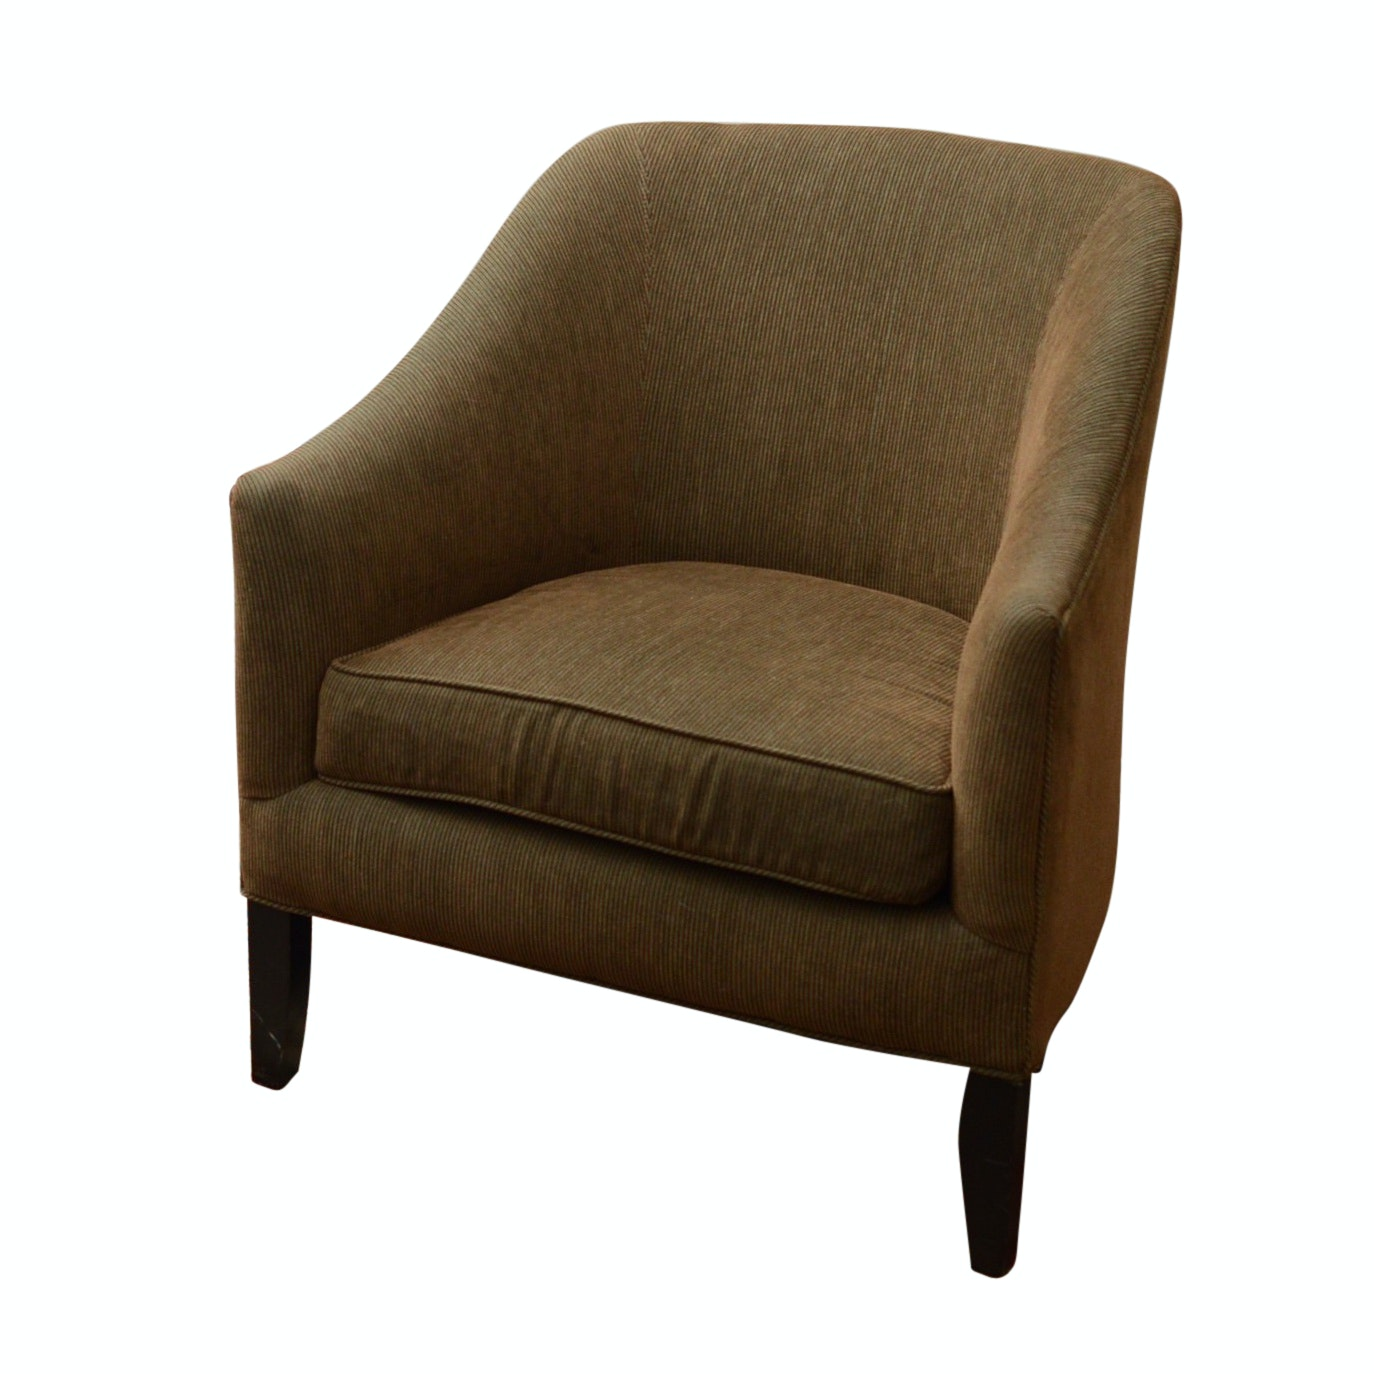 Barrel Arm Chair by Arhaus, 20th Century